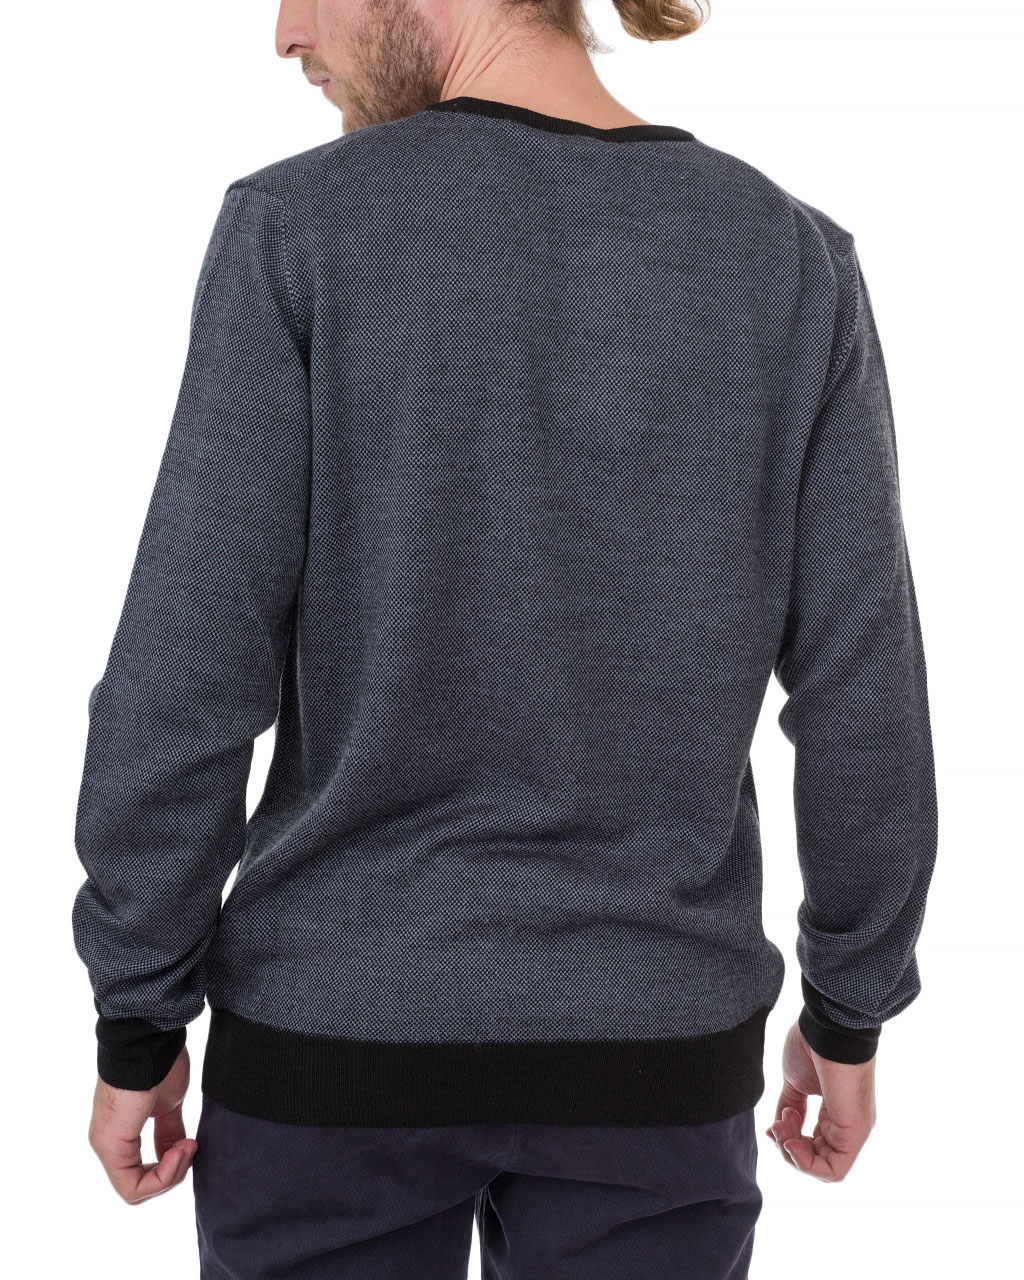 Men's jumper 52M00241-OF000428-U290/19-20 (7)